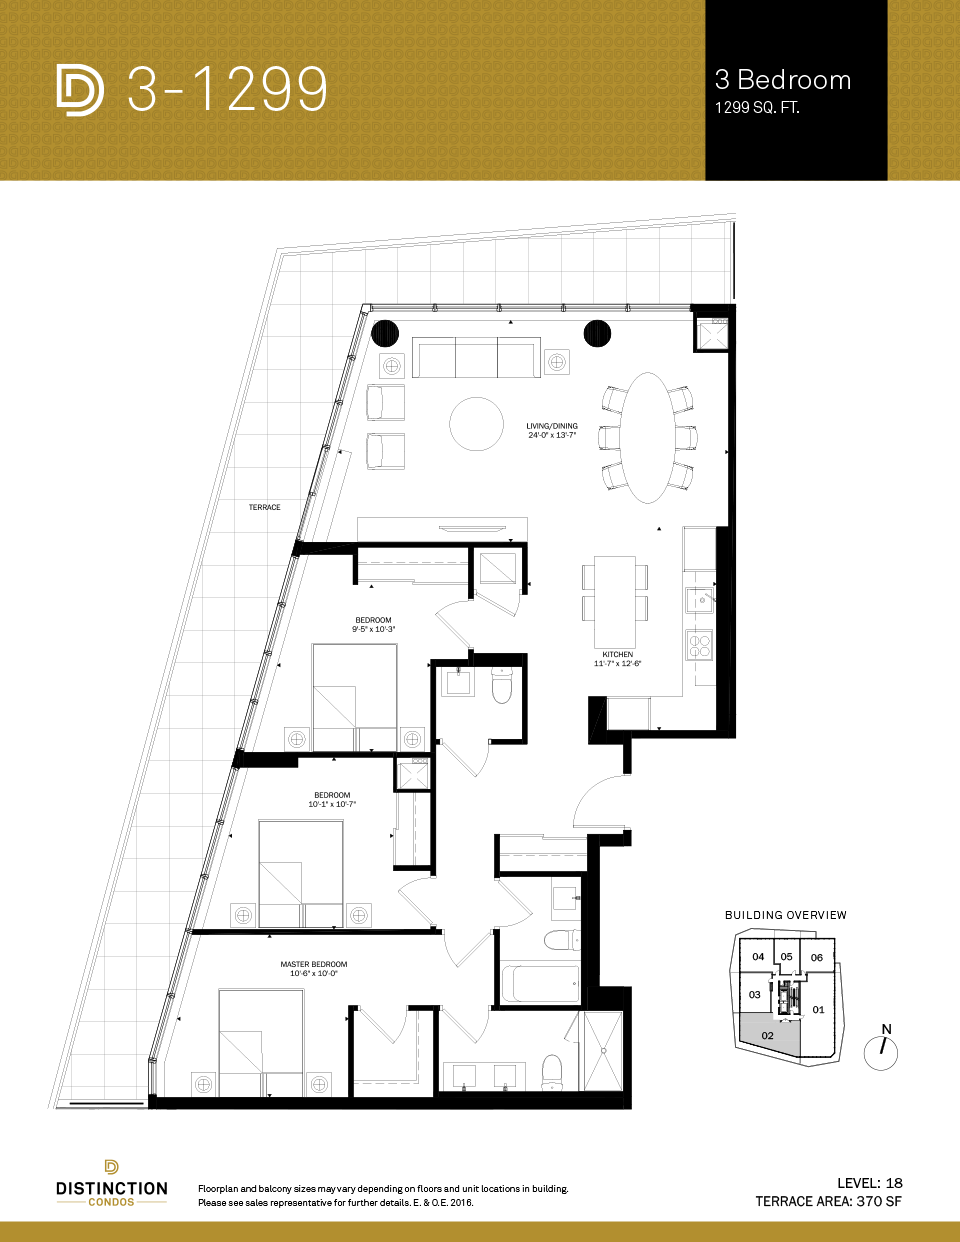 distinction condos floorplan 3-1299